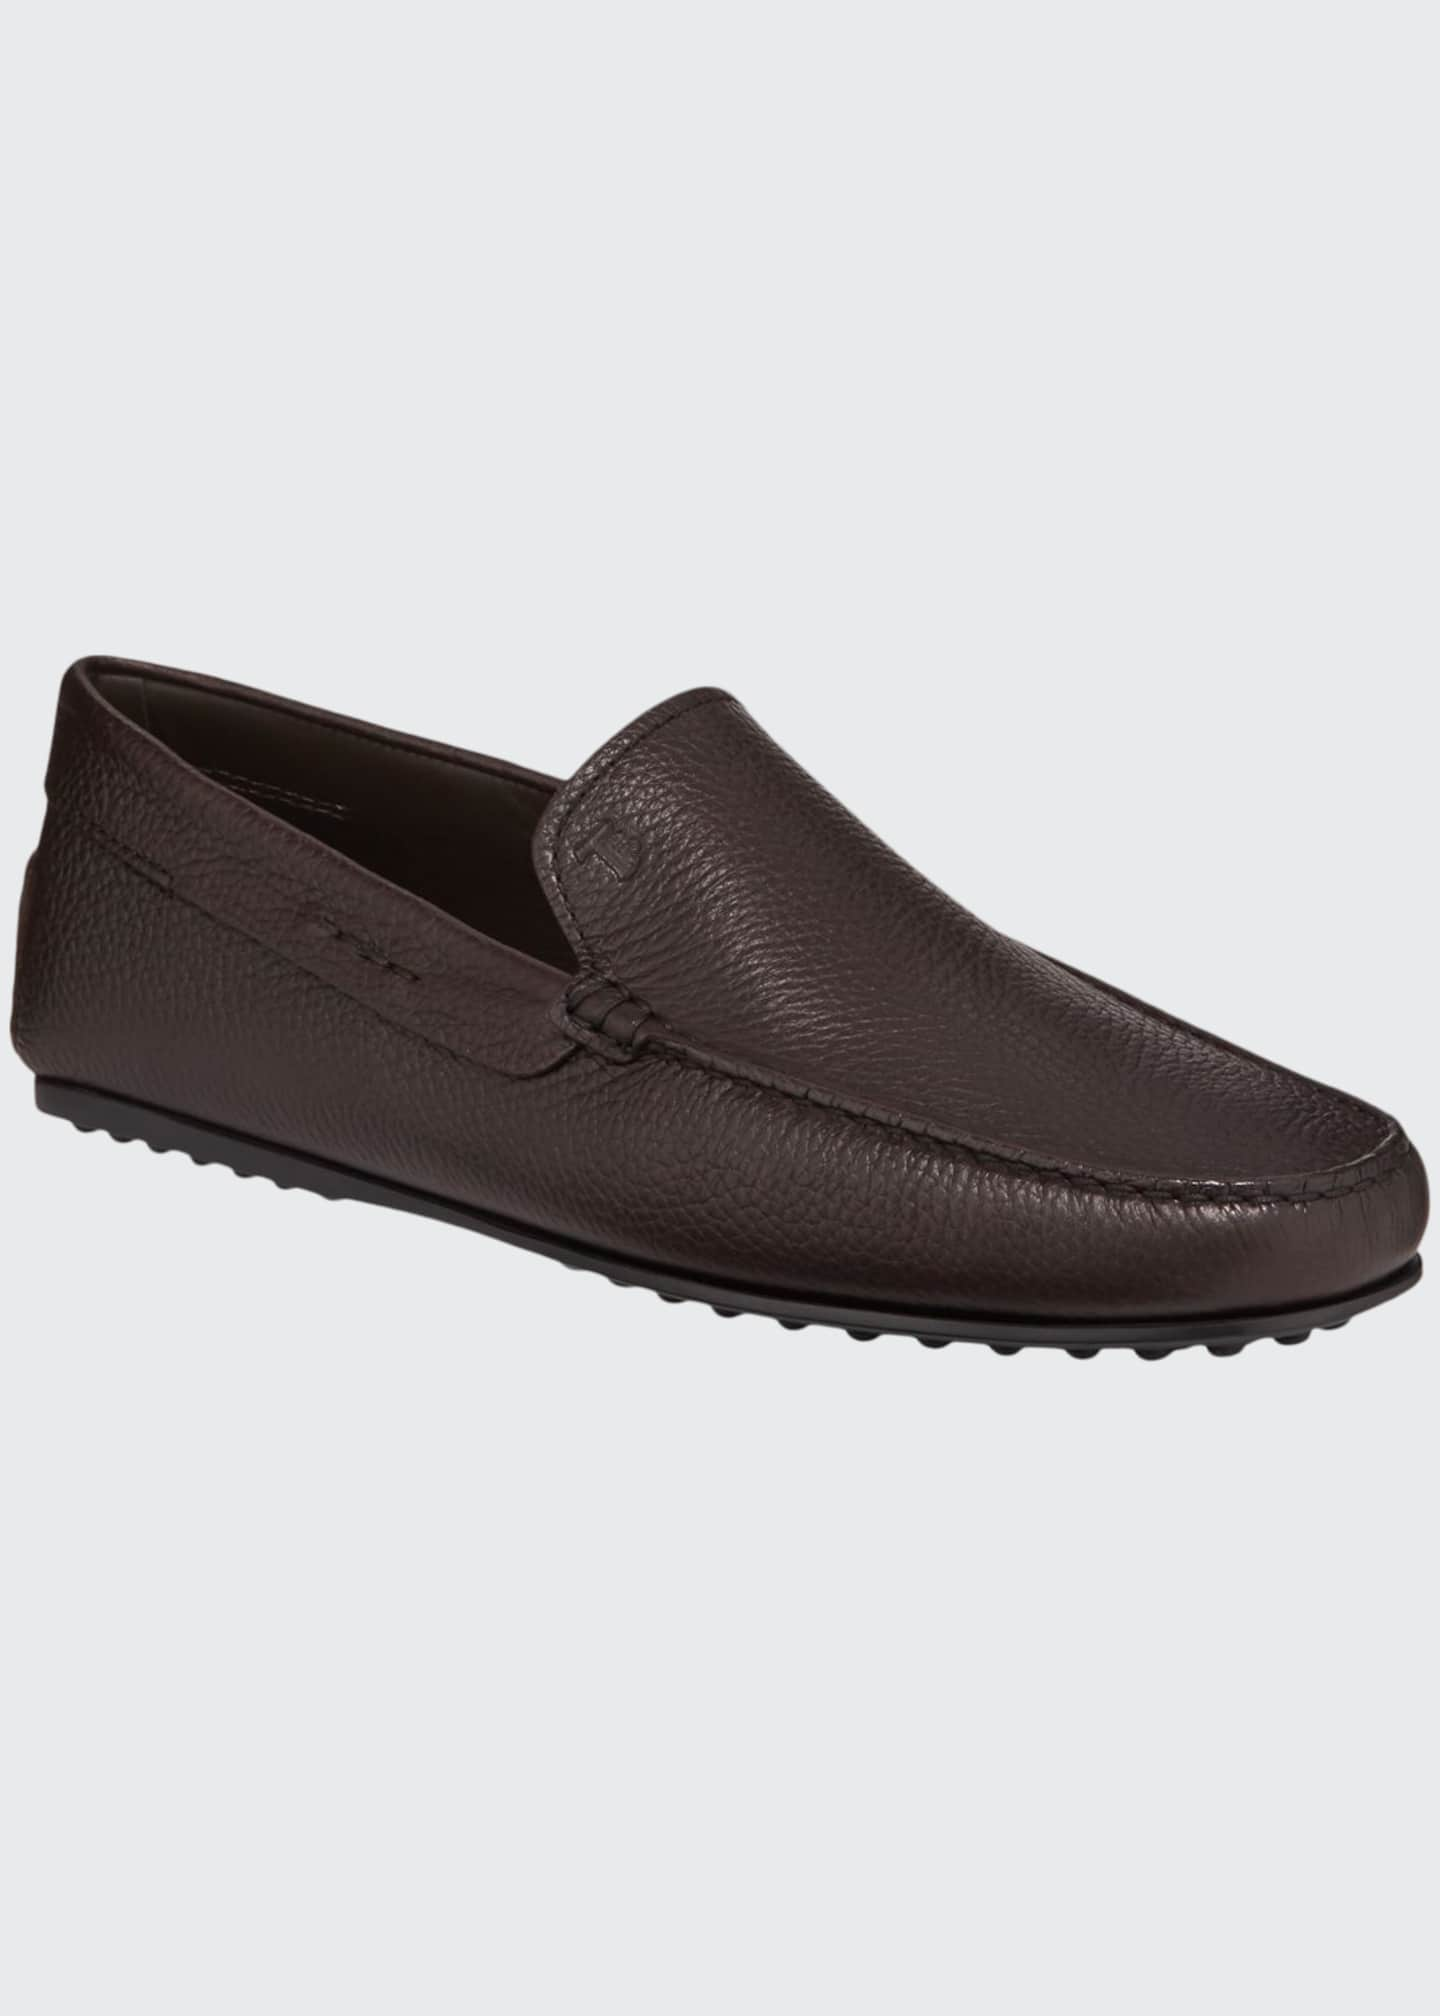 Image 1 of 3: Men's City Leather Moc-Toe Driver Shoes